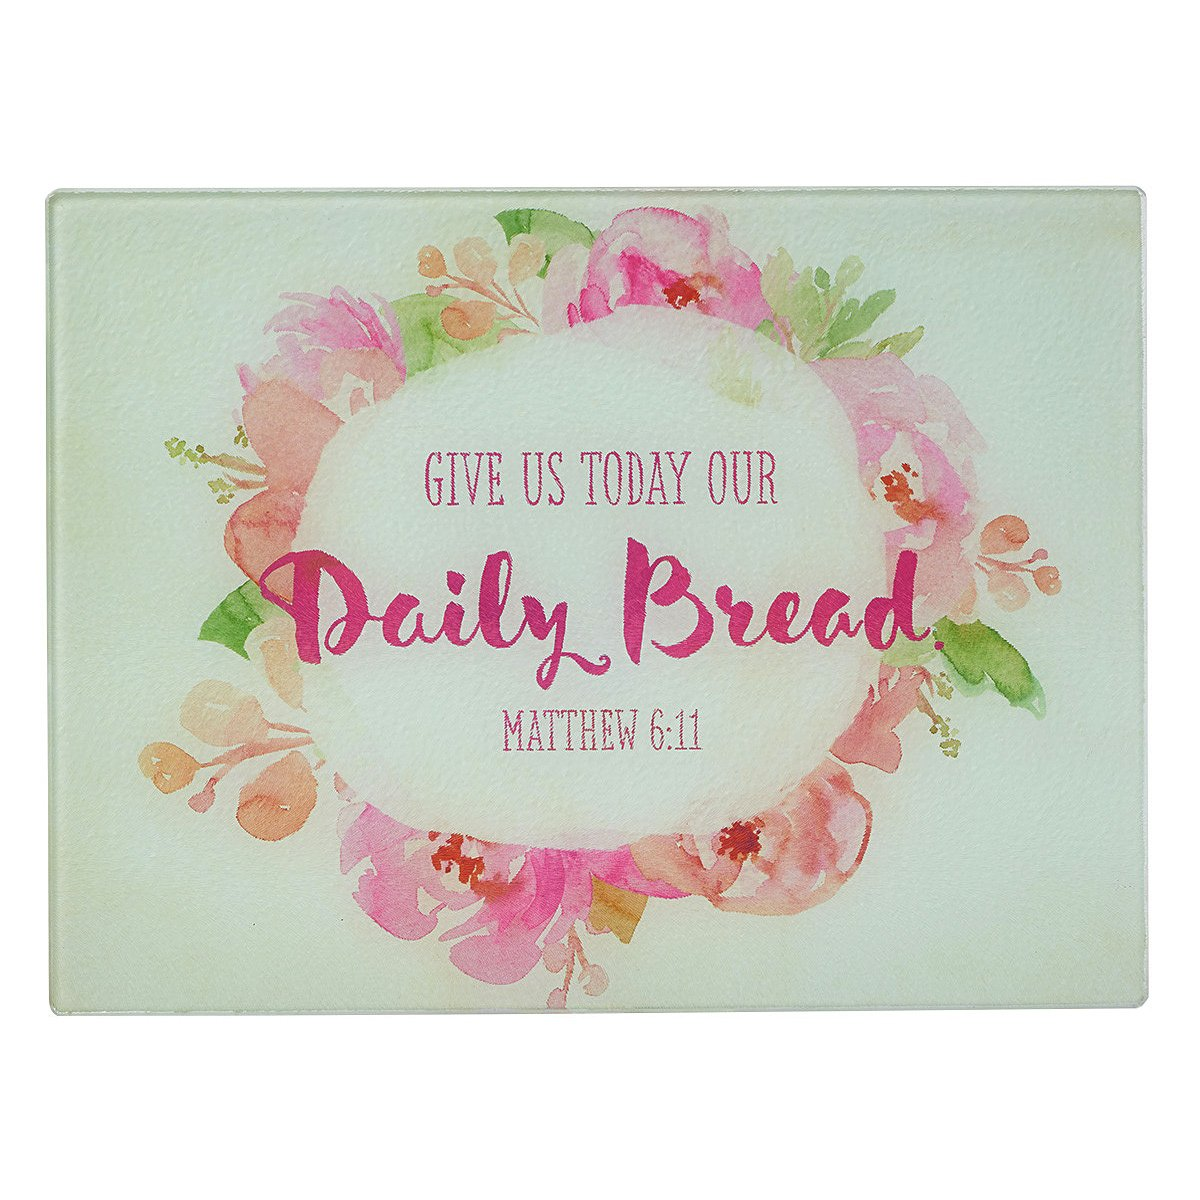 Watercolor Collection ''Daily Bread'' Glass Cutting Board / Trivet (Large: 15 3/4 x 11 7/8) - Matthew 6:11